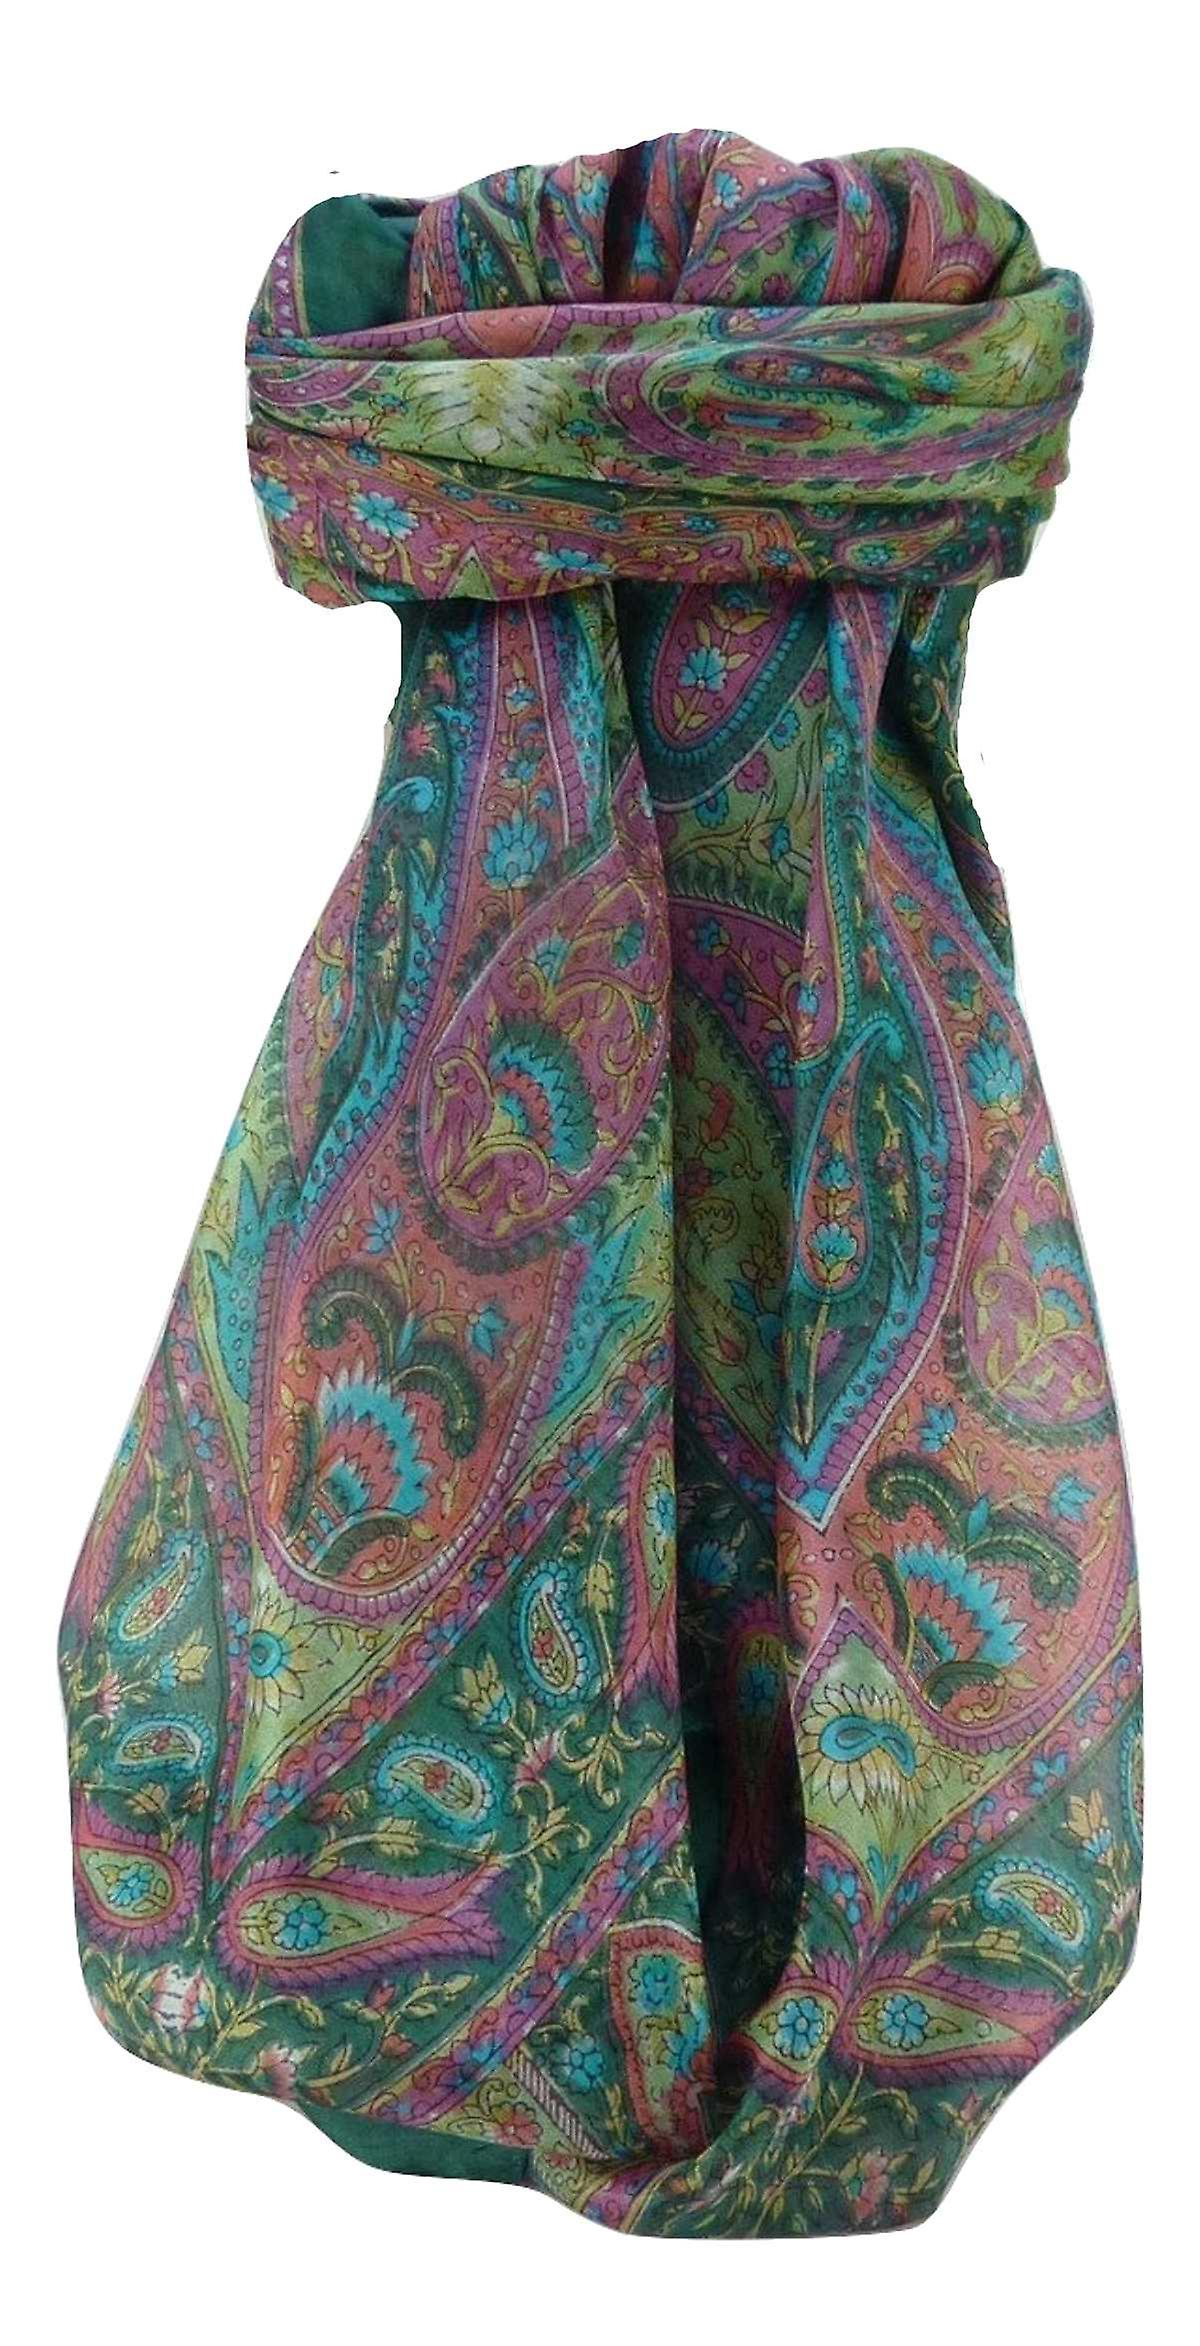 Mulberry Silk Traditional Square Scarf Keshar Sage by Pashmina & Silk